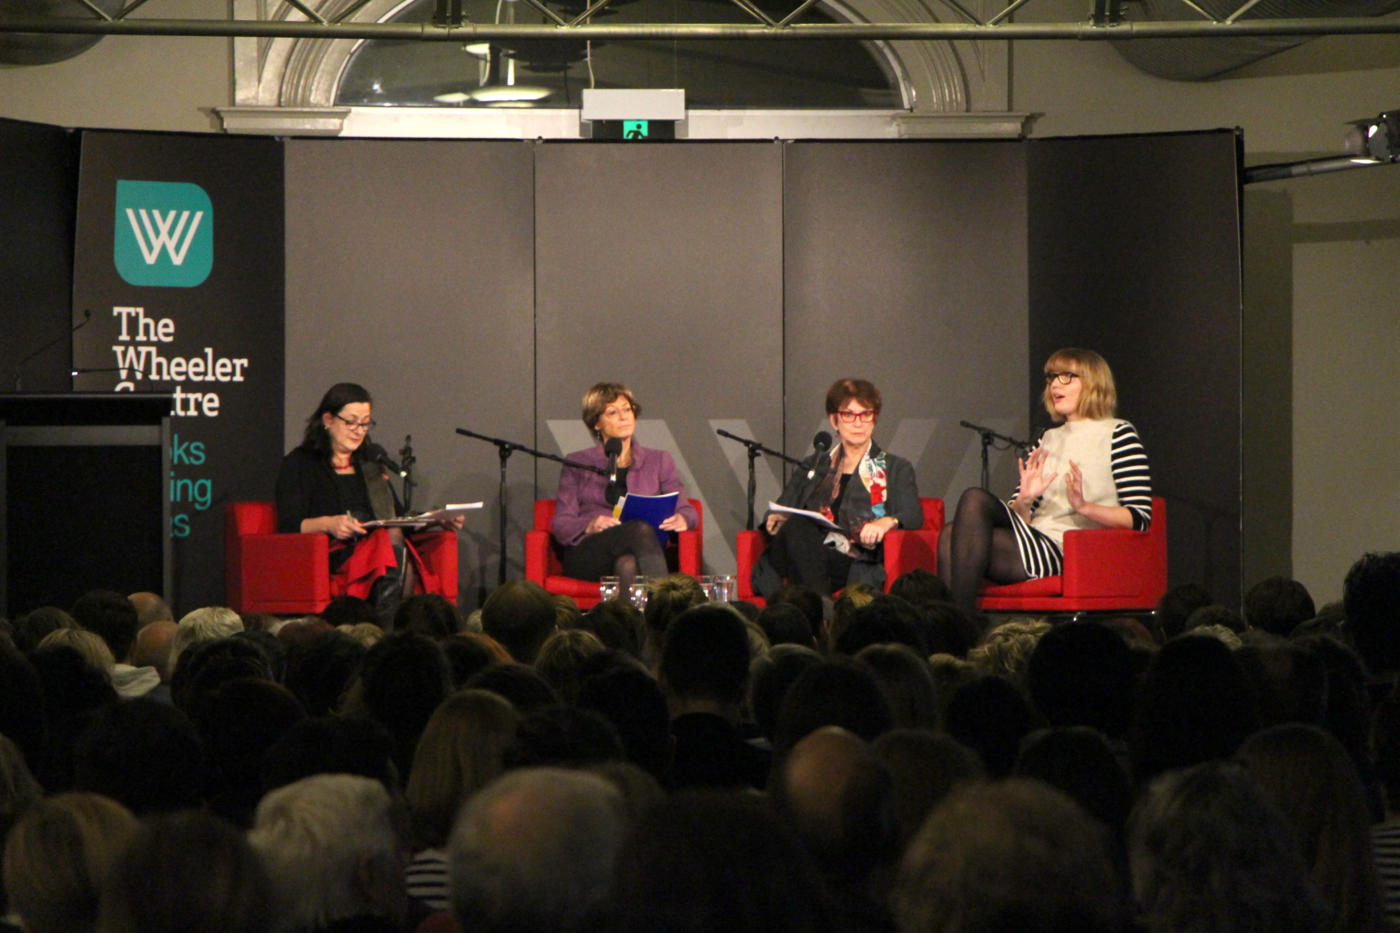 Image: A photo of the panellists